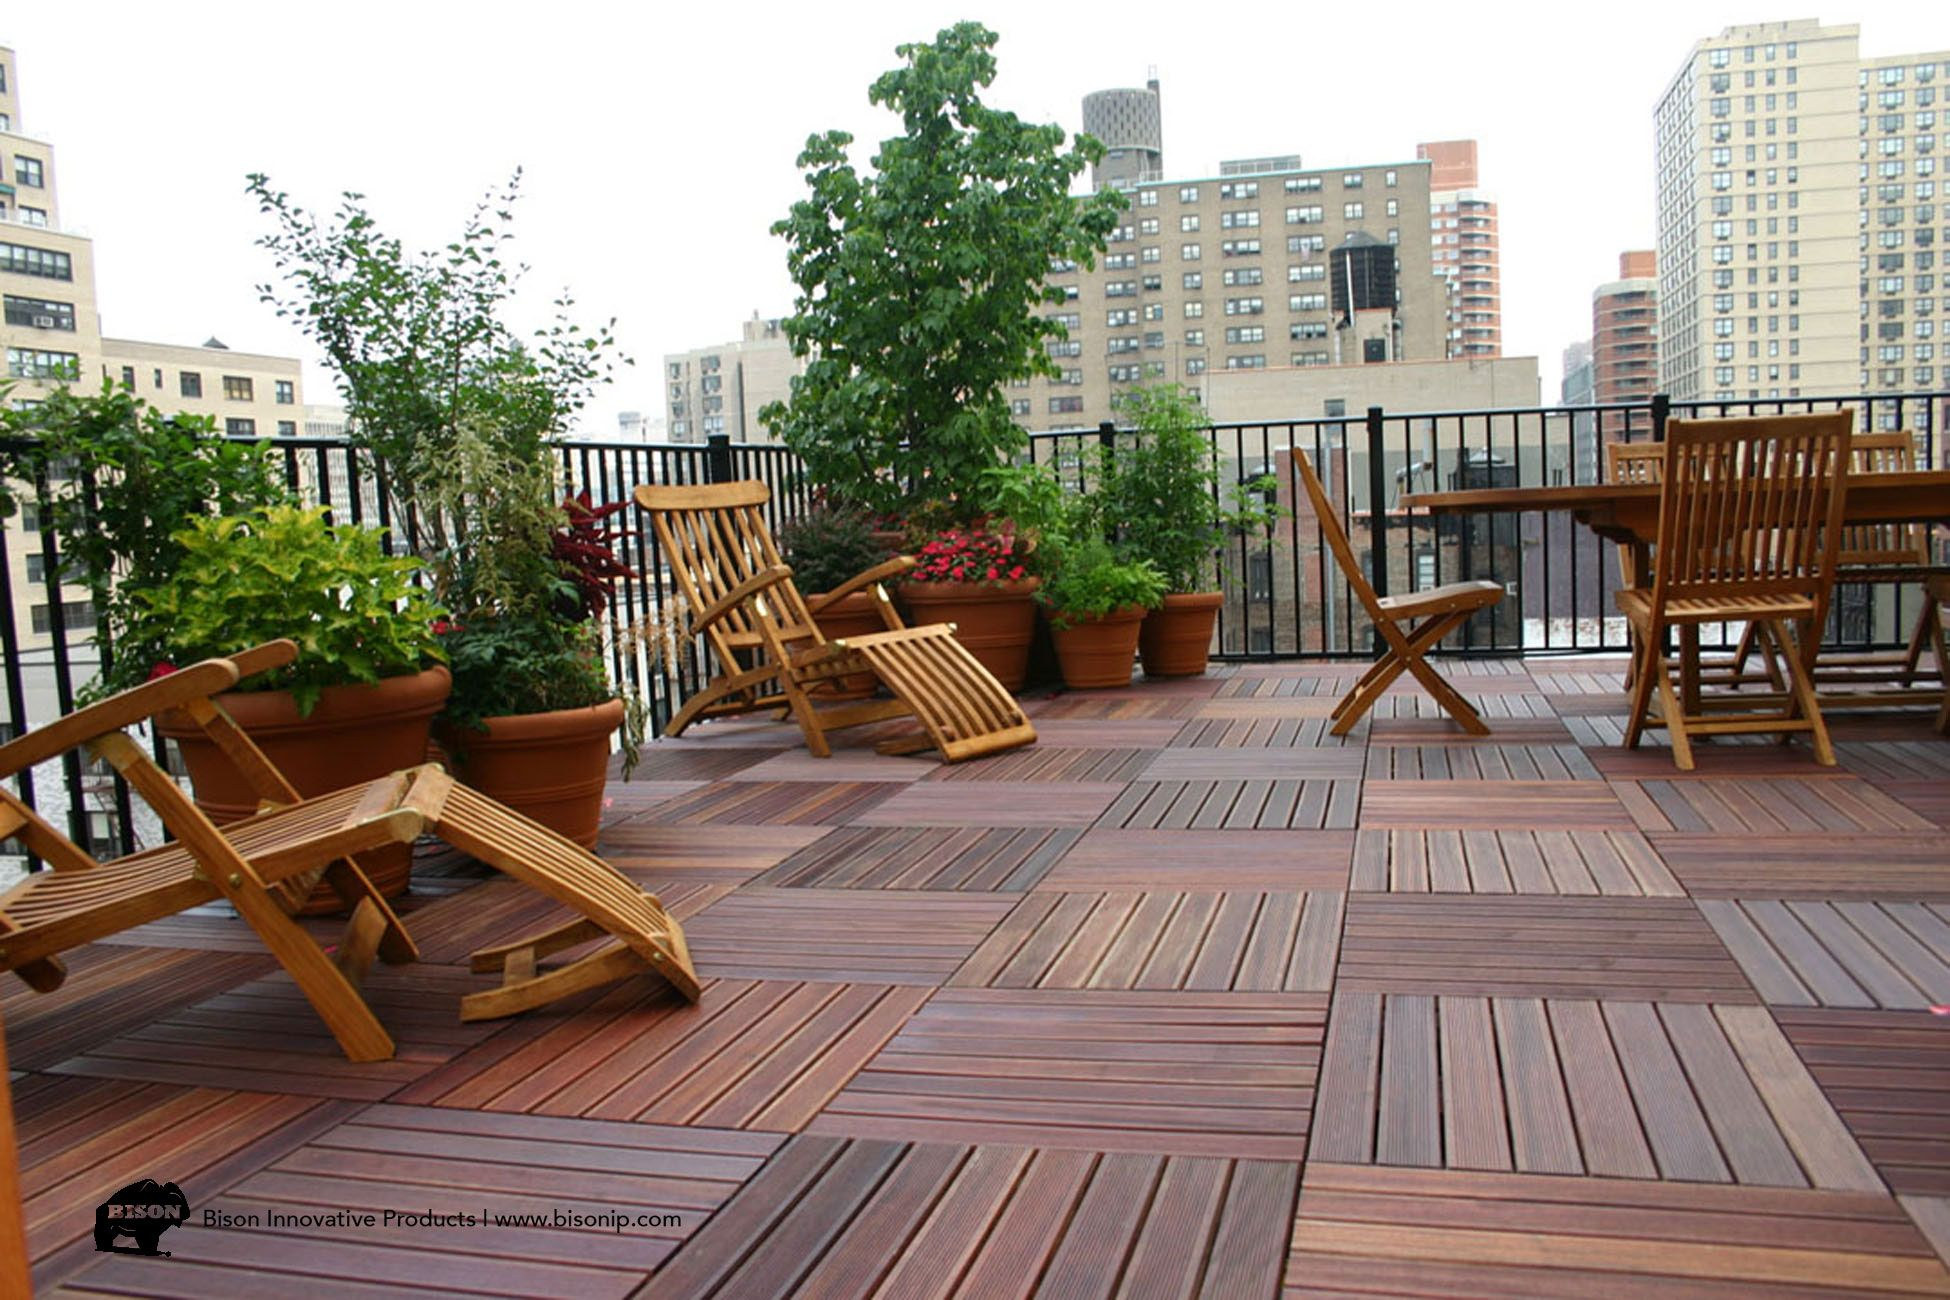 Rooftop Deck In New York Using Bison Innovative Products Wood